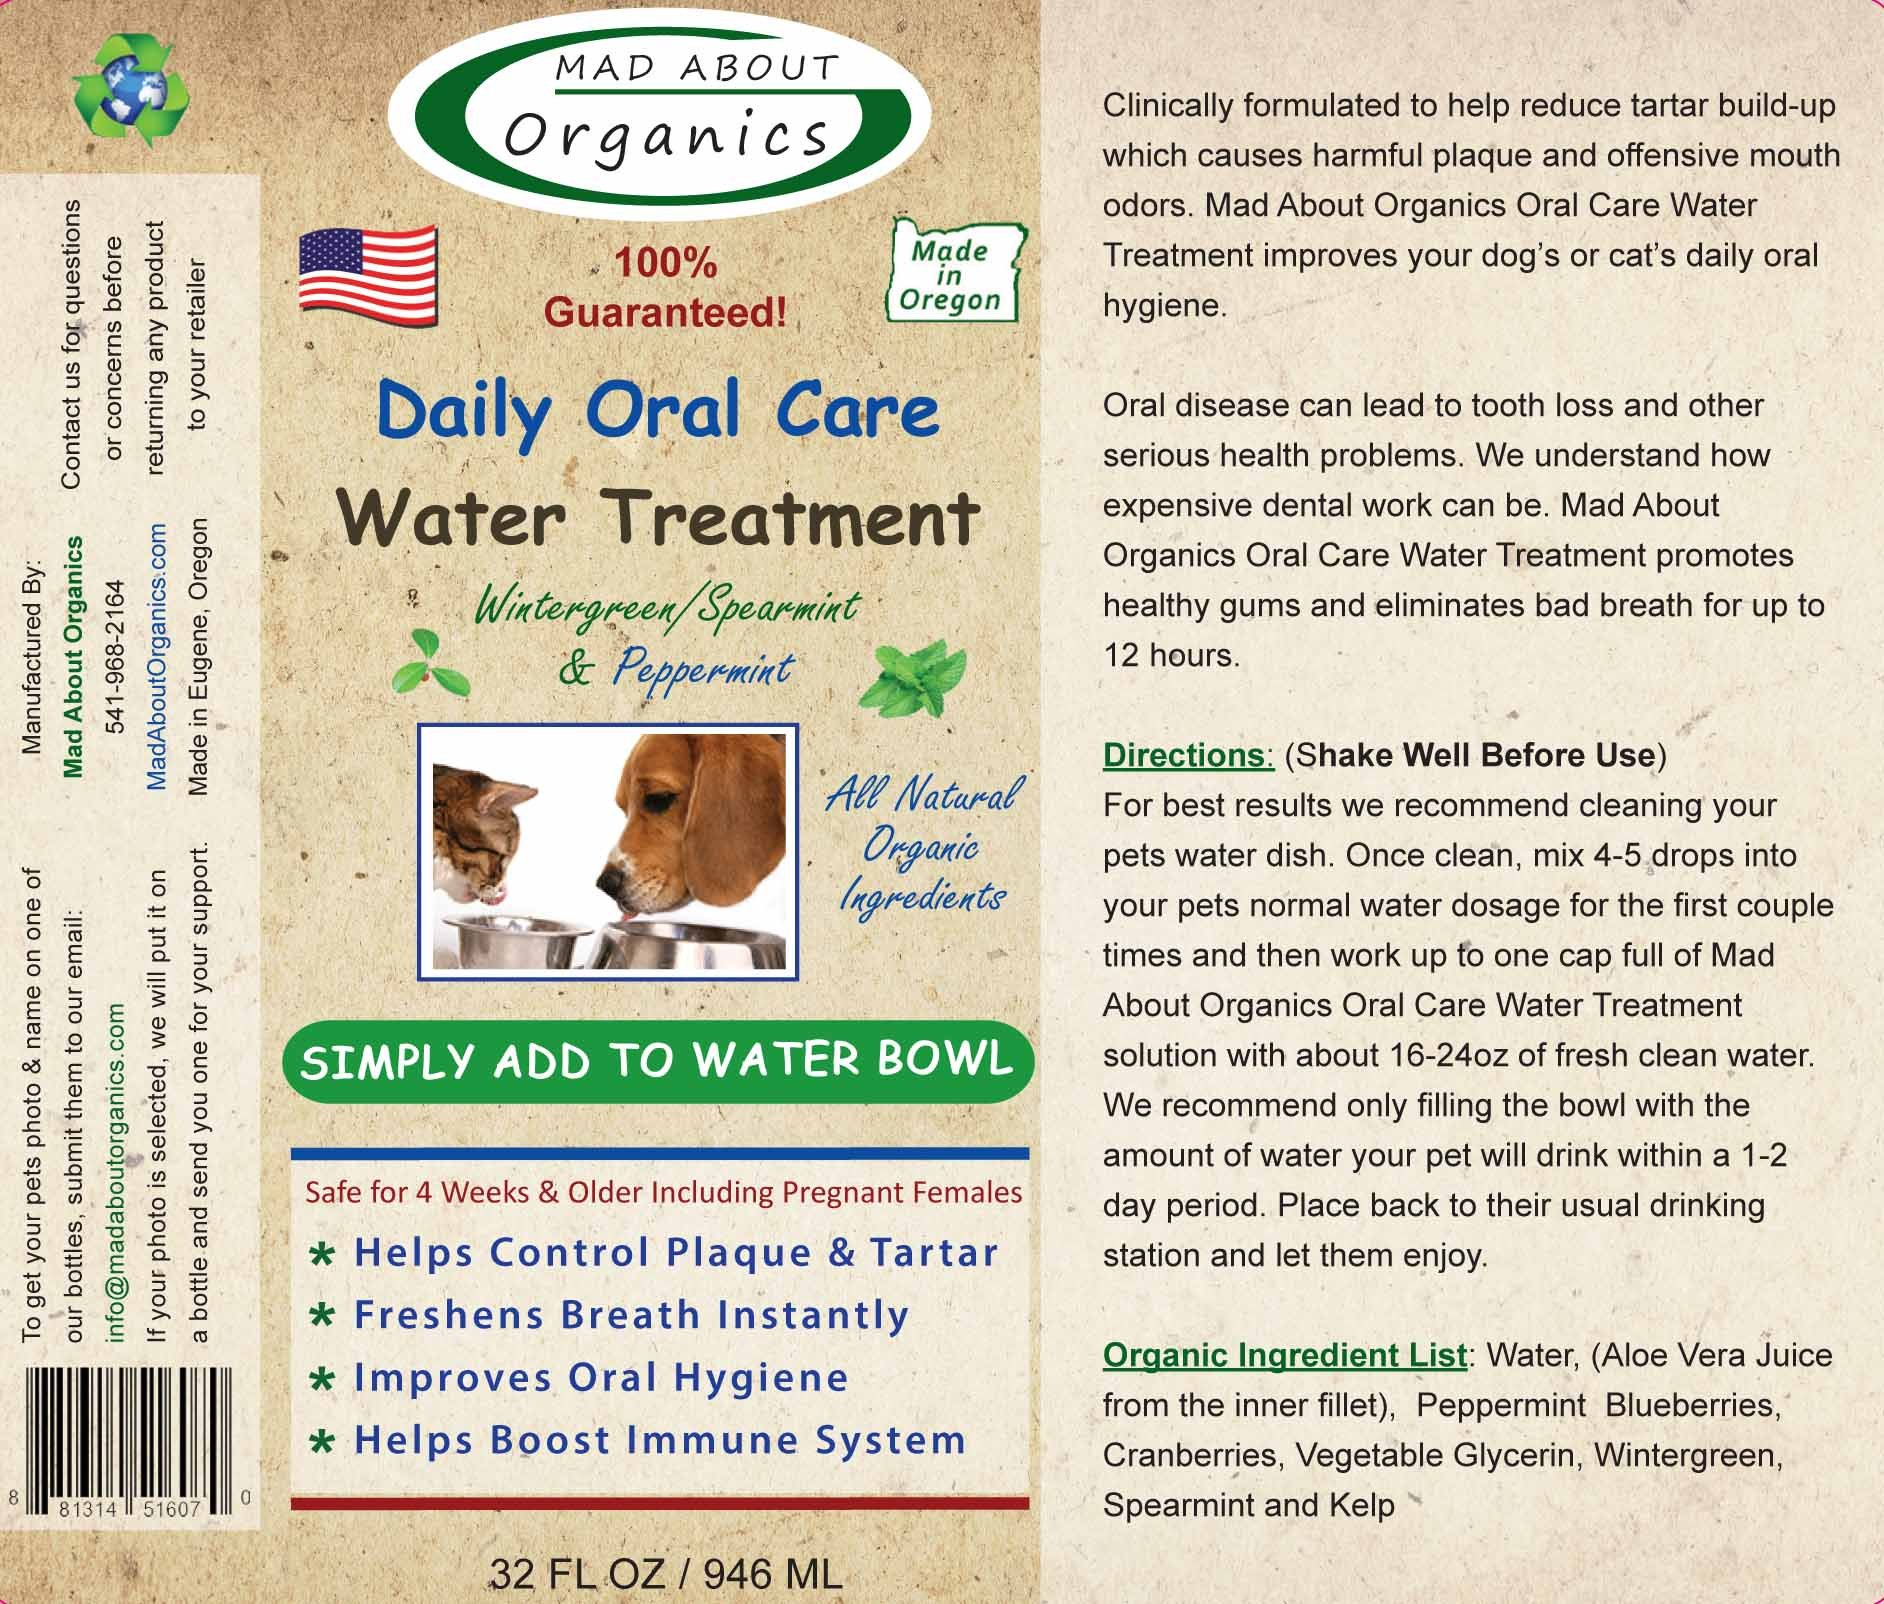 Mad About Organics All Natural Dog & Cat Daily Oral Care Liquid Plaque & Tartar Remover 32oz by Mad About Organics (Image #2)